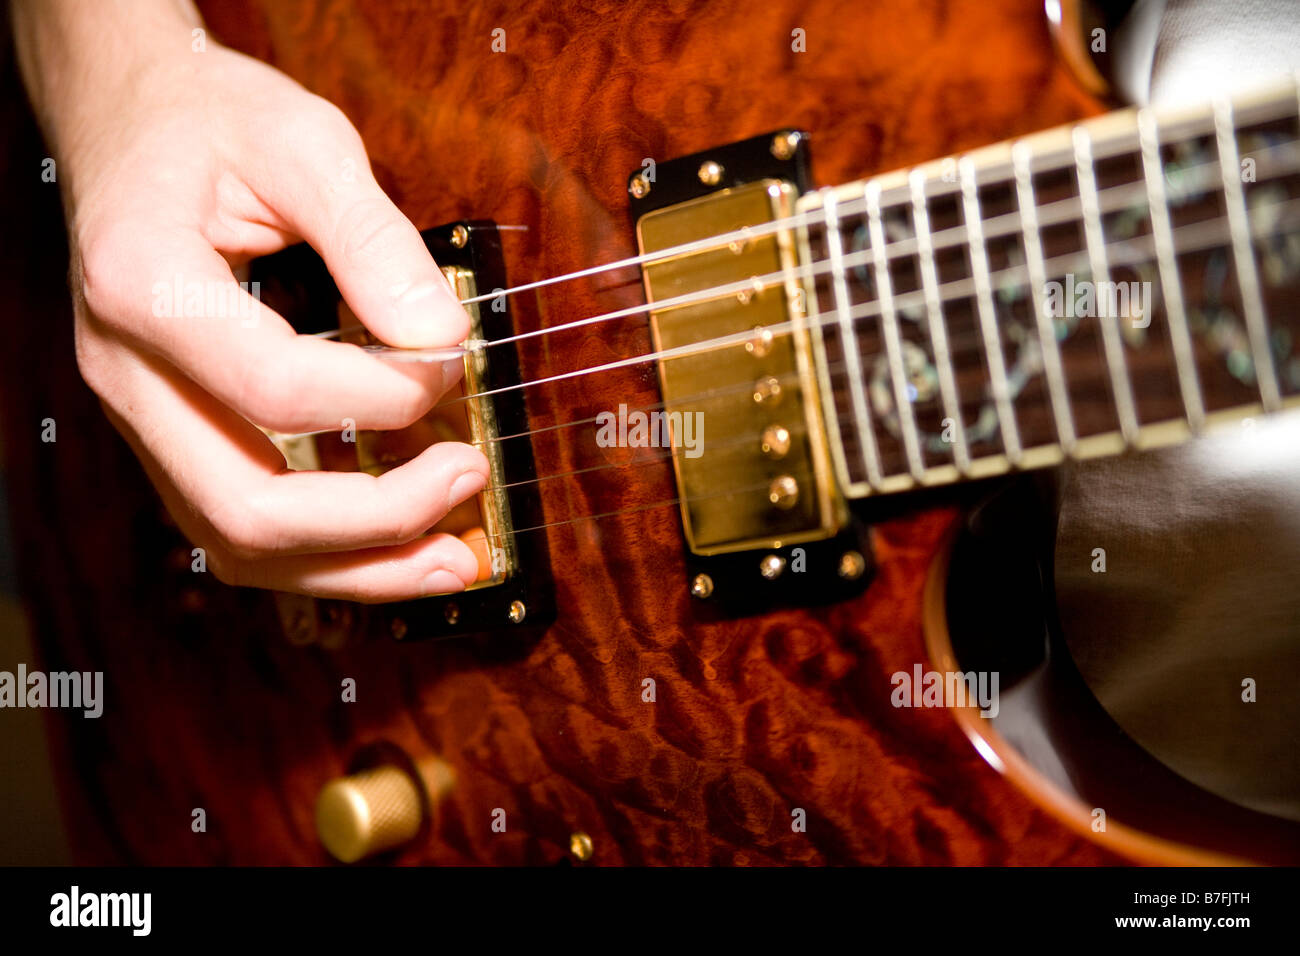 guitar string vibration stock photos guitar string vibration stock images alamy. Black Bedroom Furniture Sets. Home Design Ideas